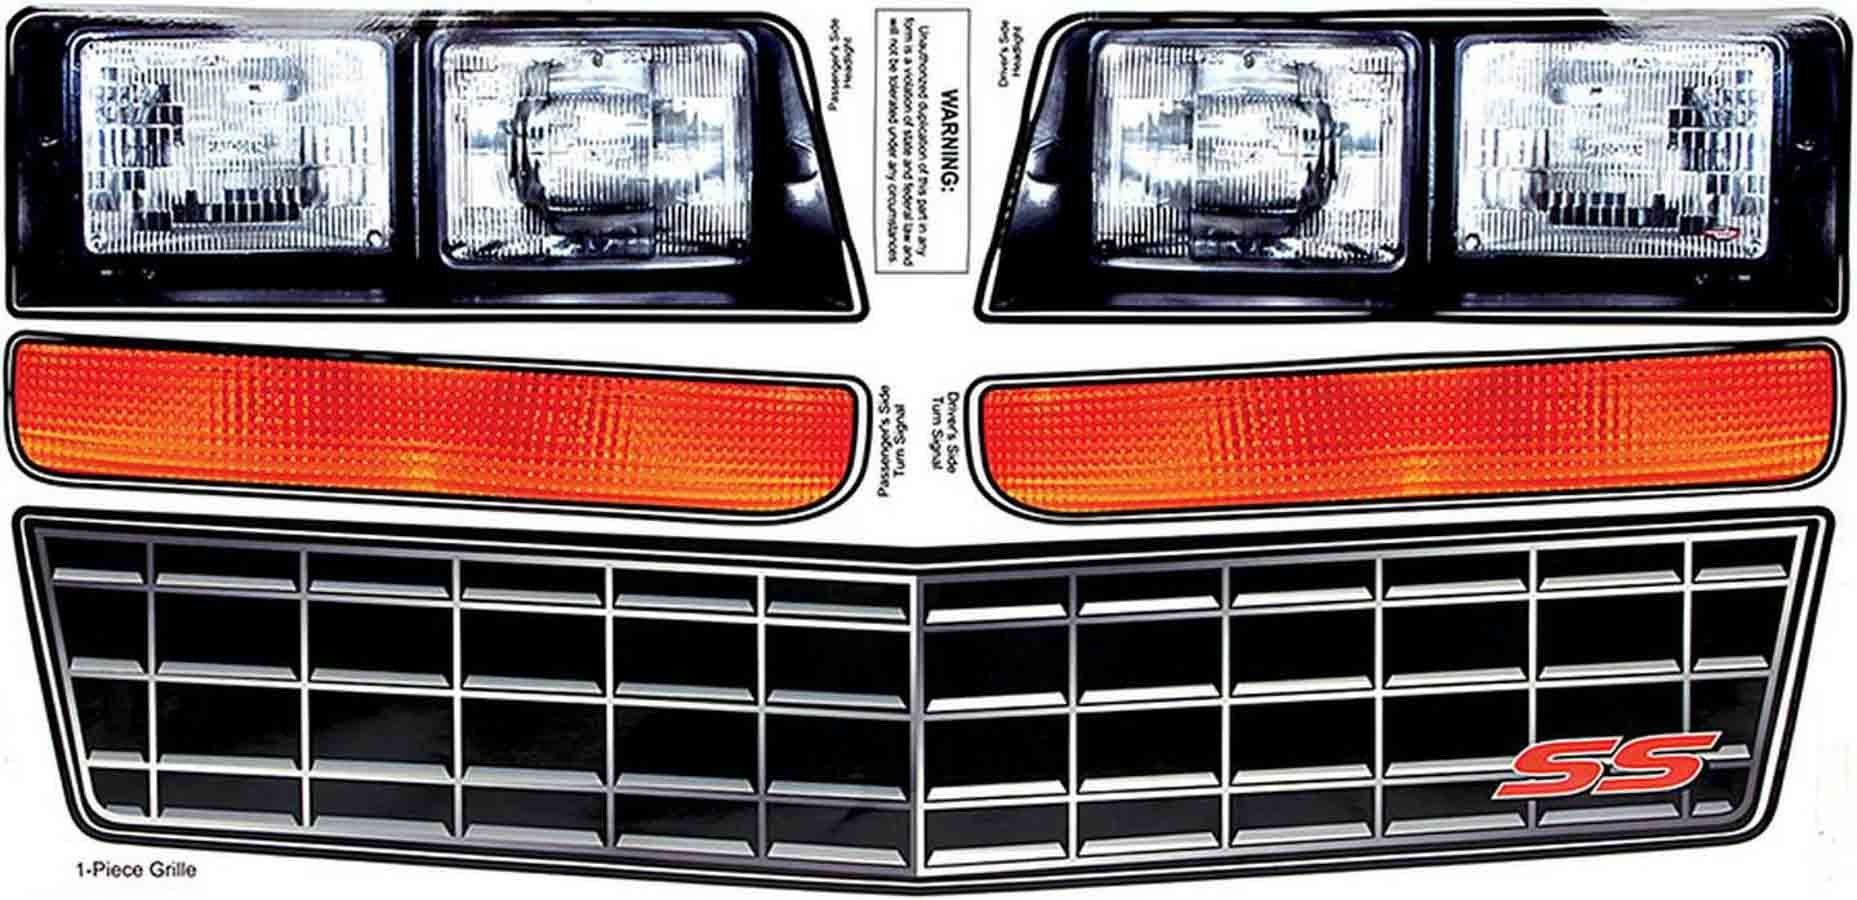 Allstar Performance M/C SS Nose Decal Kit Stock Grille 1983-88